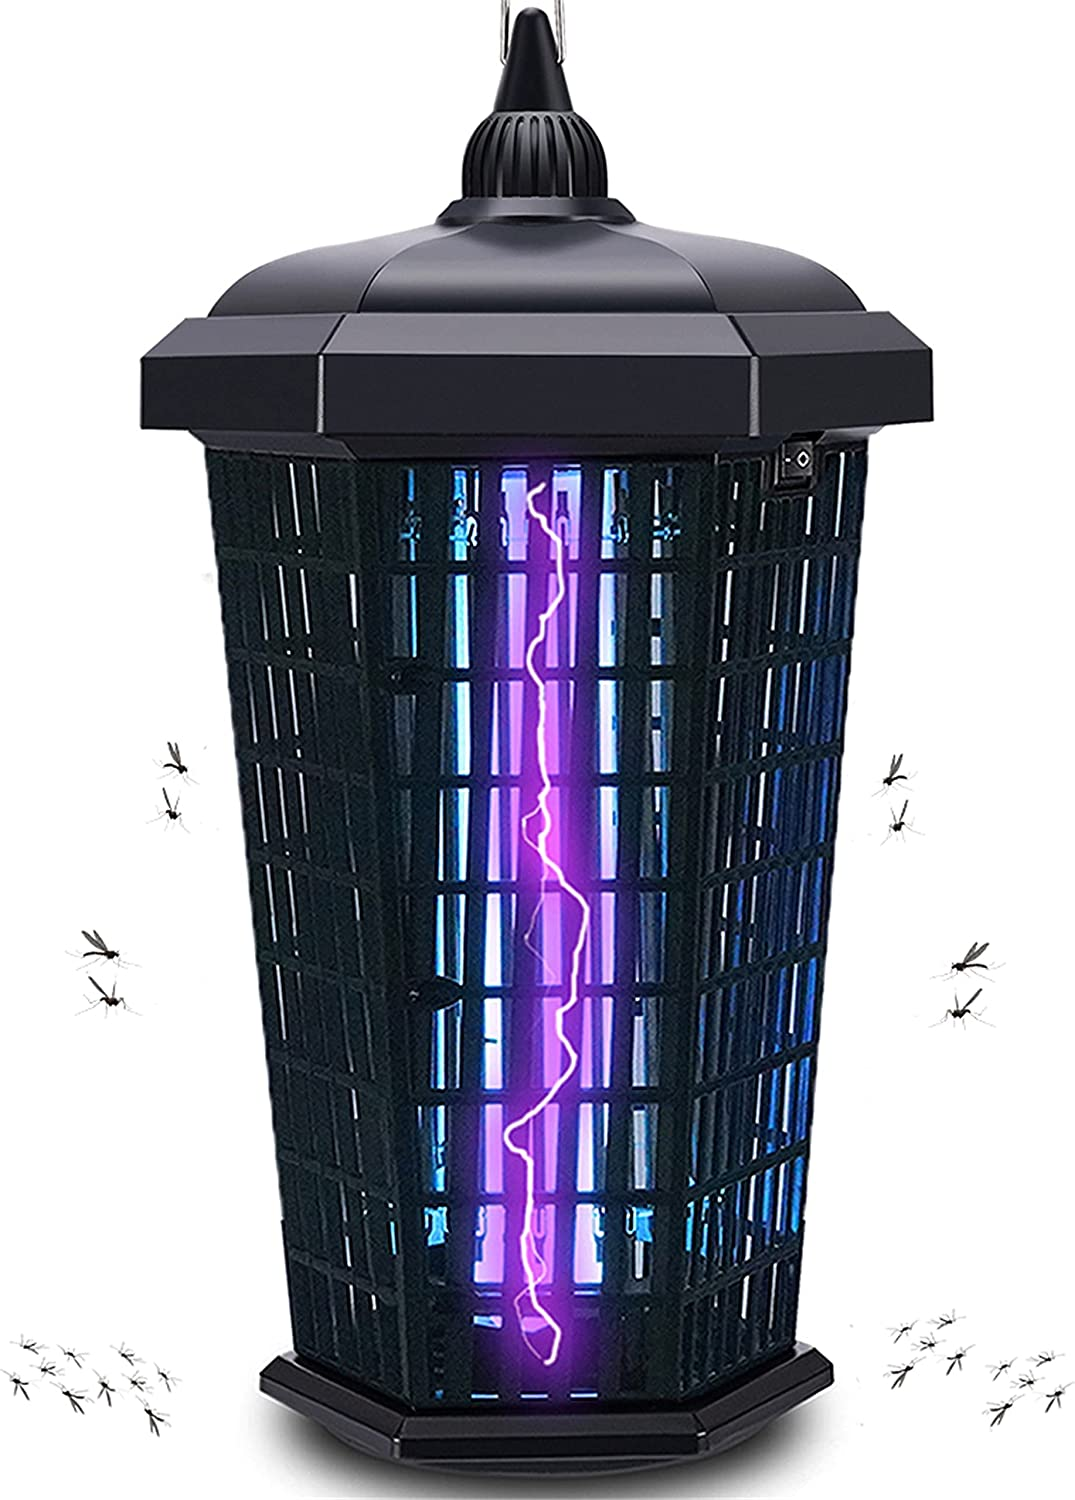 Bug Zapper Outdoor Mosquito Limited time sale Trap Killer 4200V Fly Cheap mail order sales Electric Inse